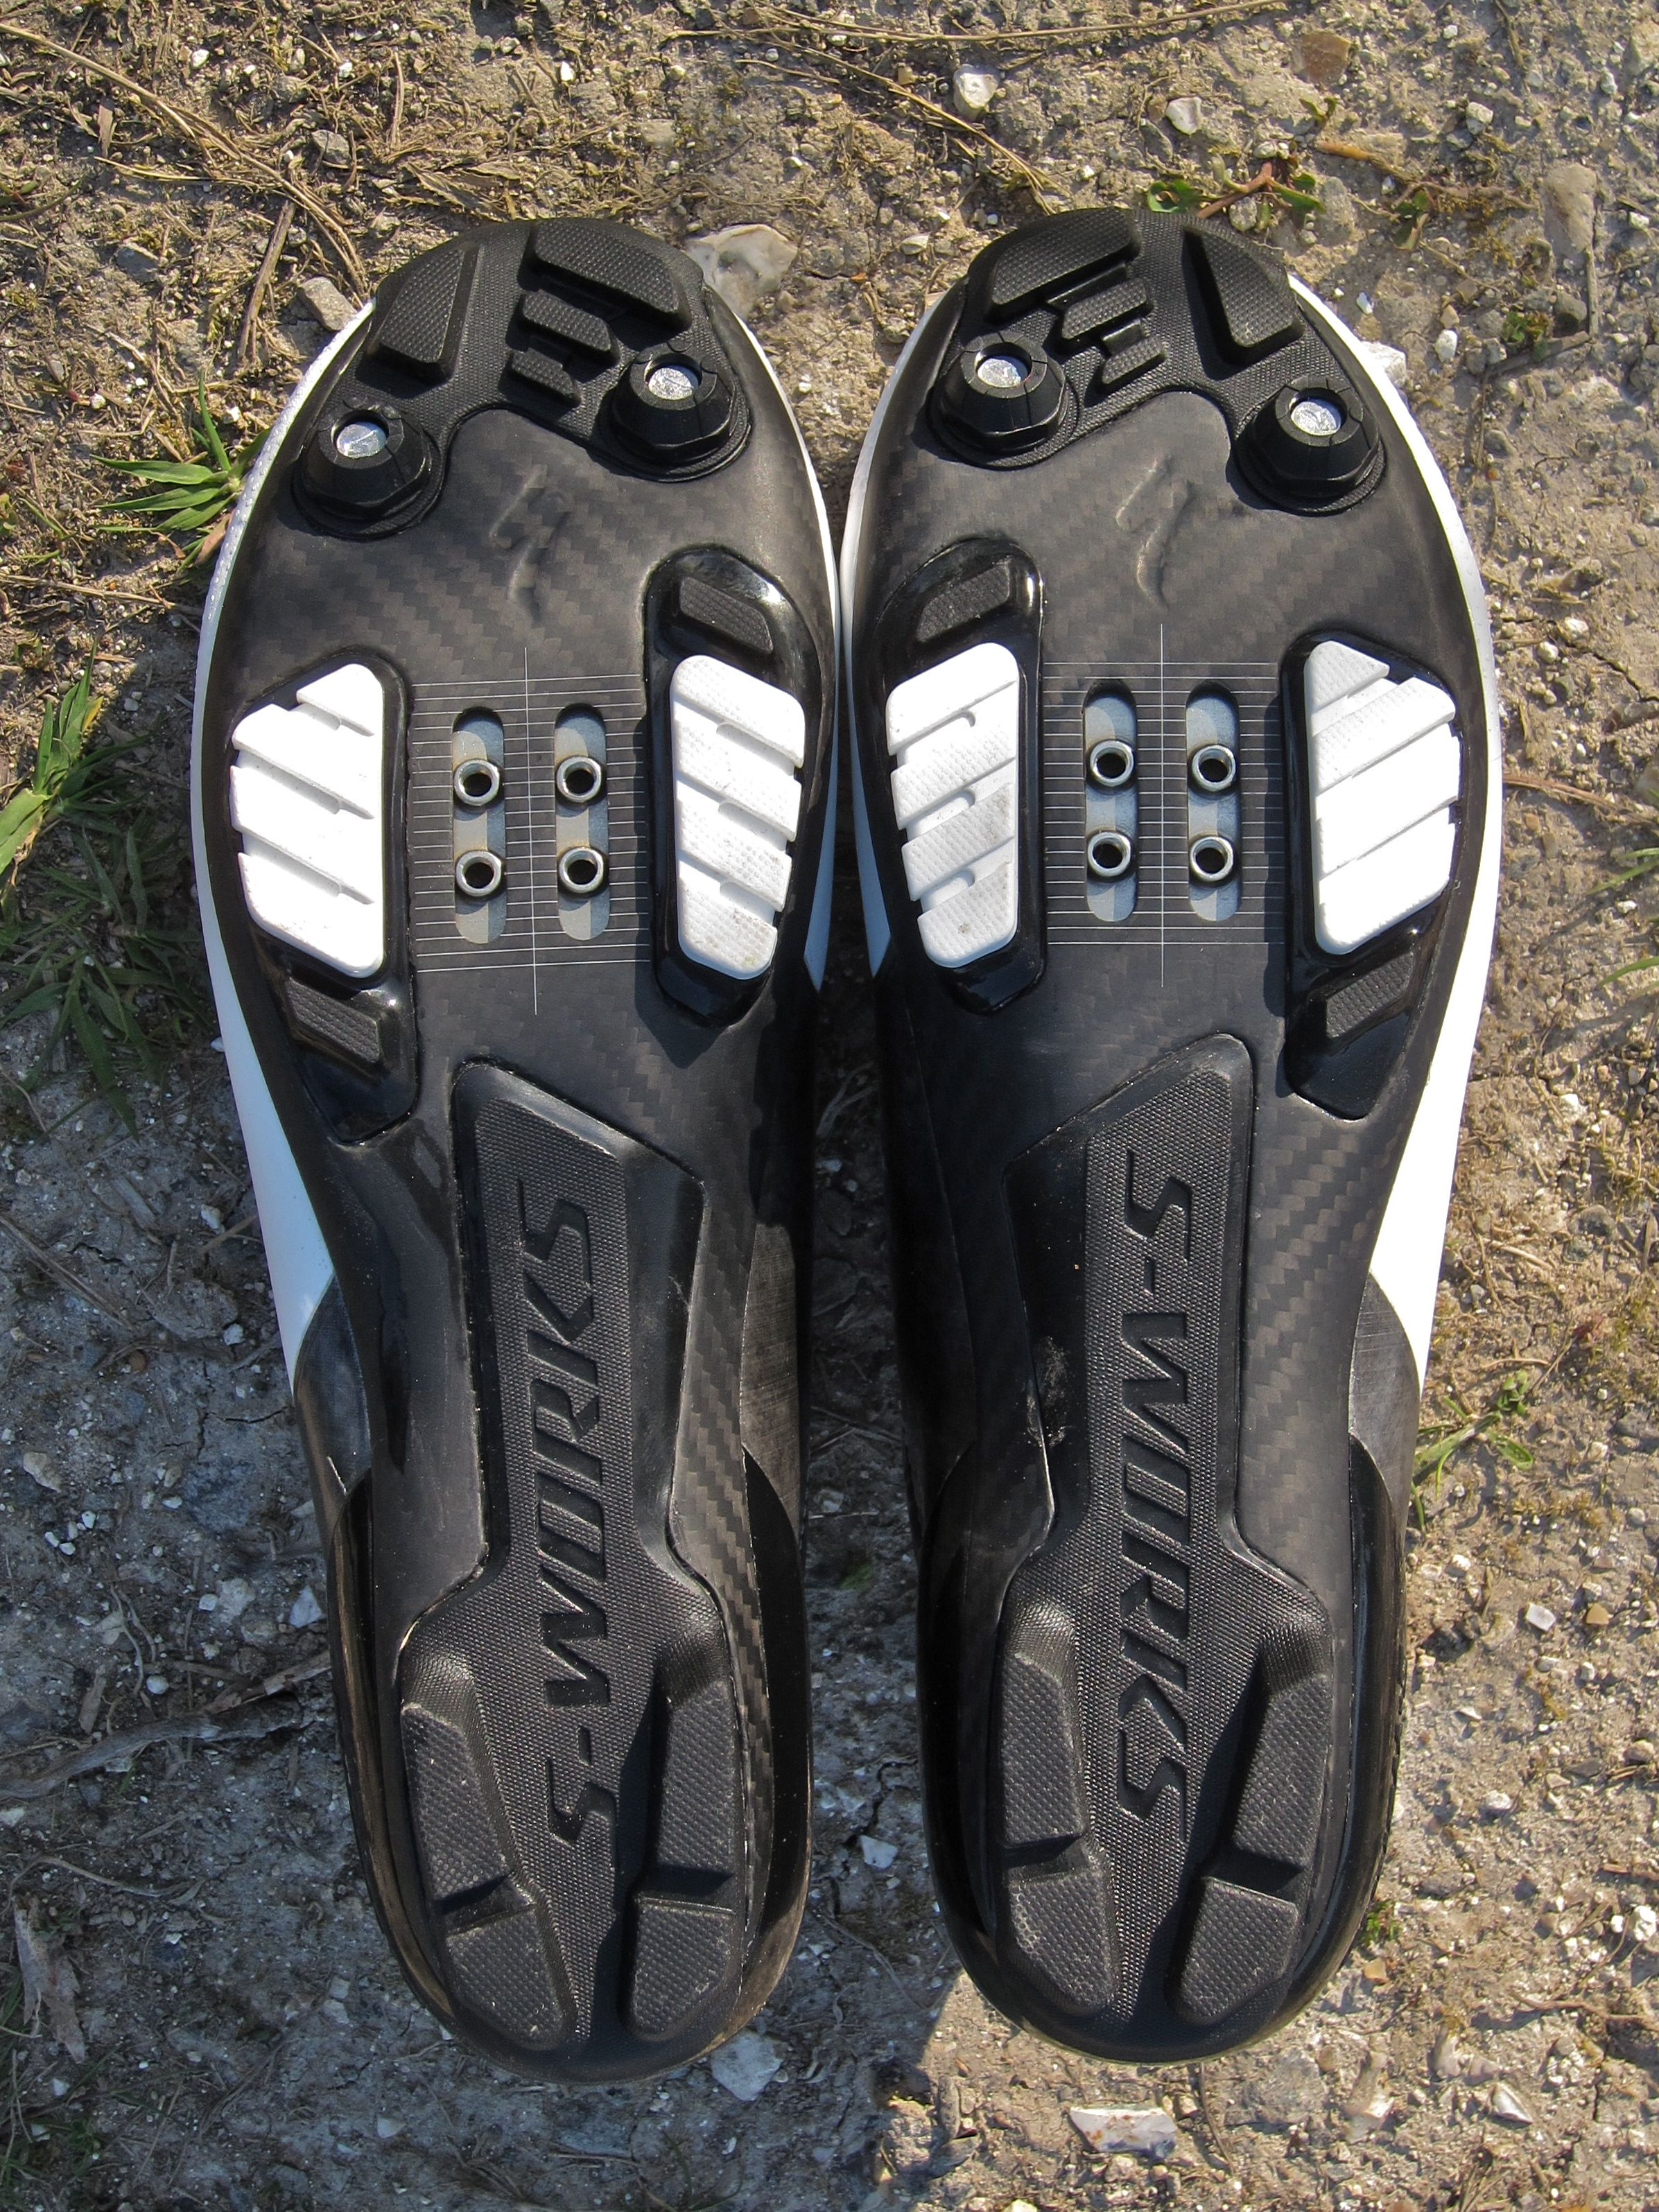 Specialized S-Works 6 XC MTB Shoe - Sole Pair.jpg